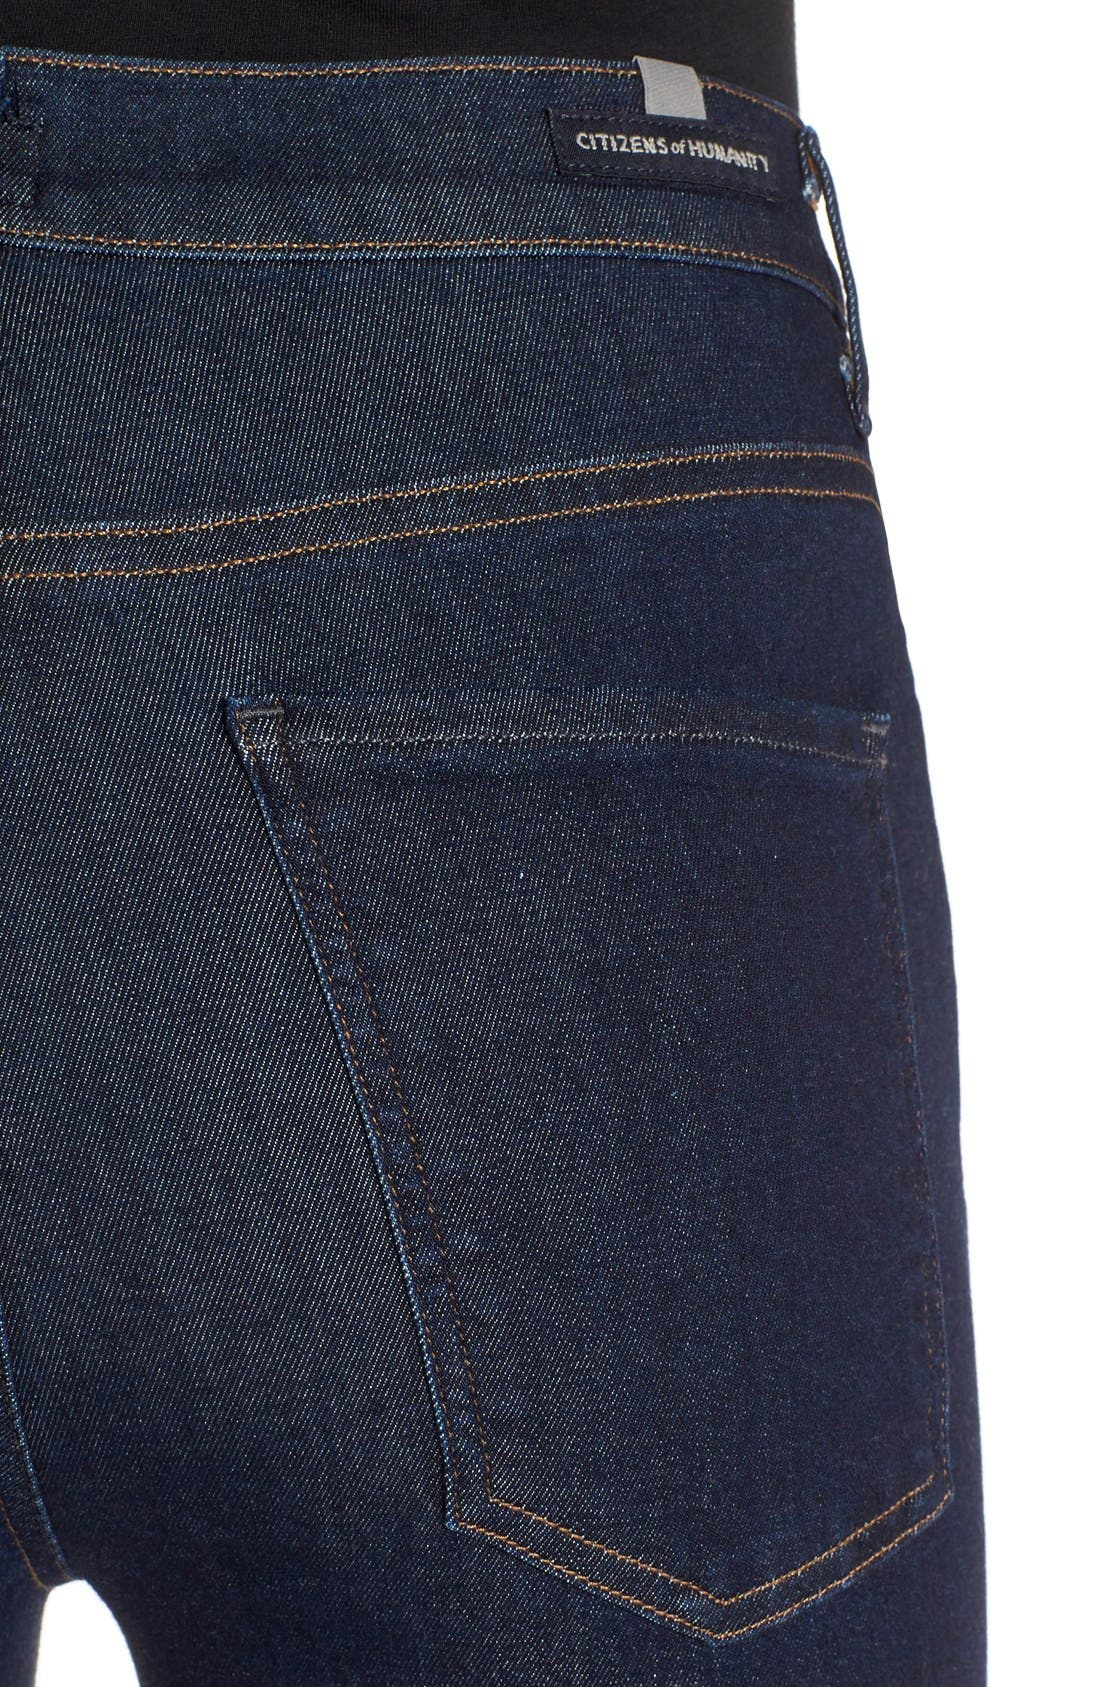 Alternate Image 4  - Citizens of Humanity 'Carlie' High Rise Skinny Jeans (Clean Blue)